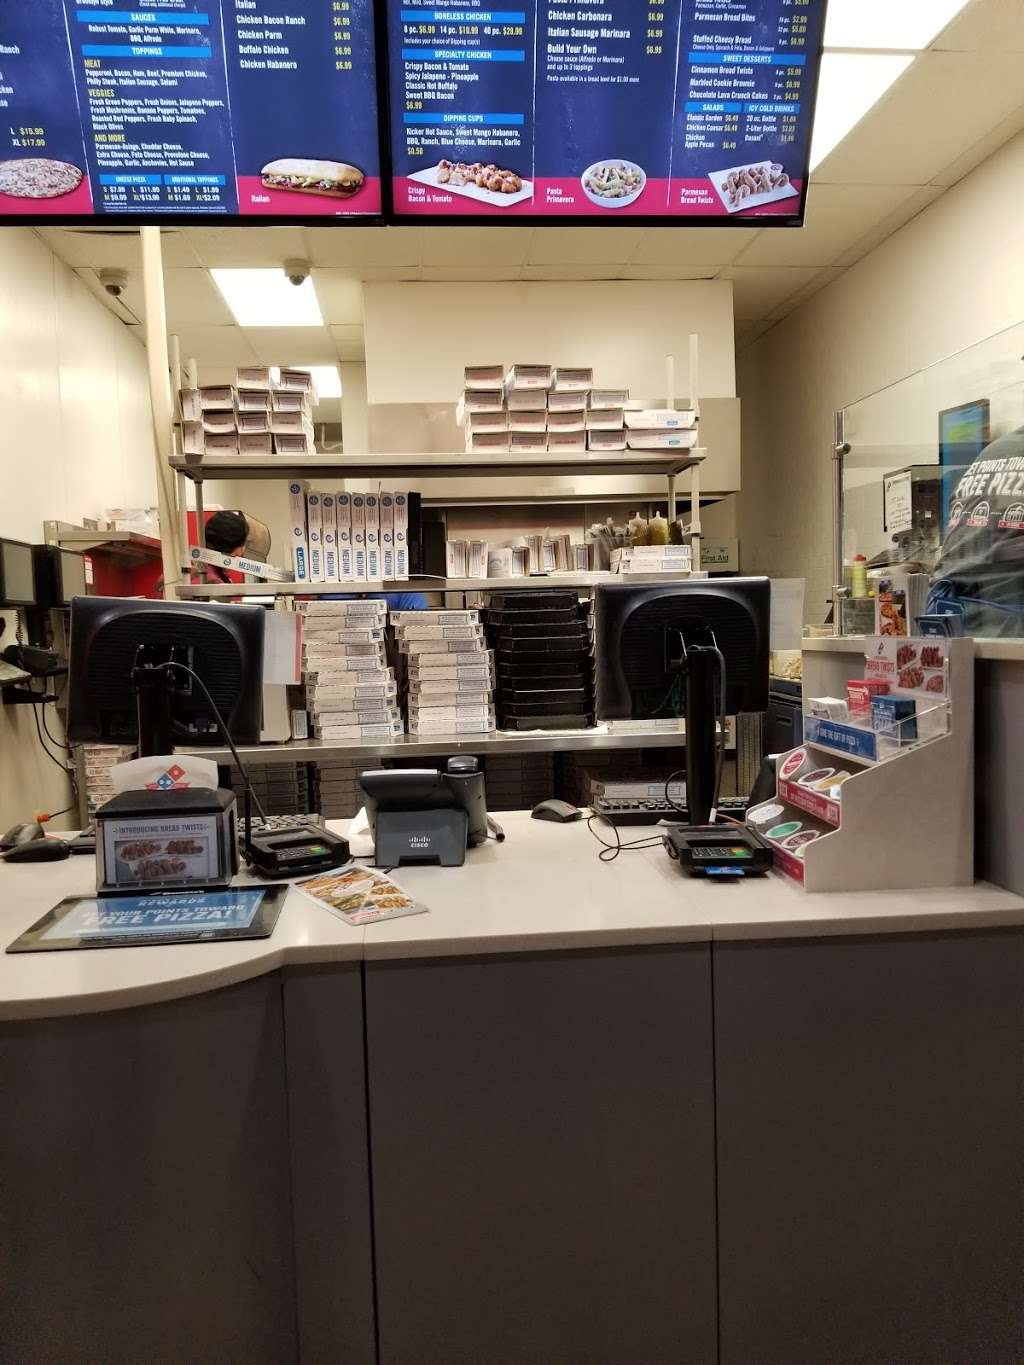 Dominos Pizza - meal delivery  | Photo 10 of 10 | Address: 538 Livingston St, Norwood, NJ 07648, USA | Phone: (201) 784-1111